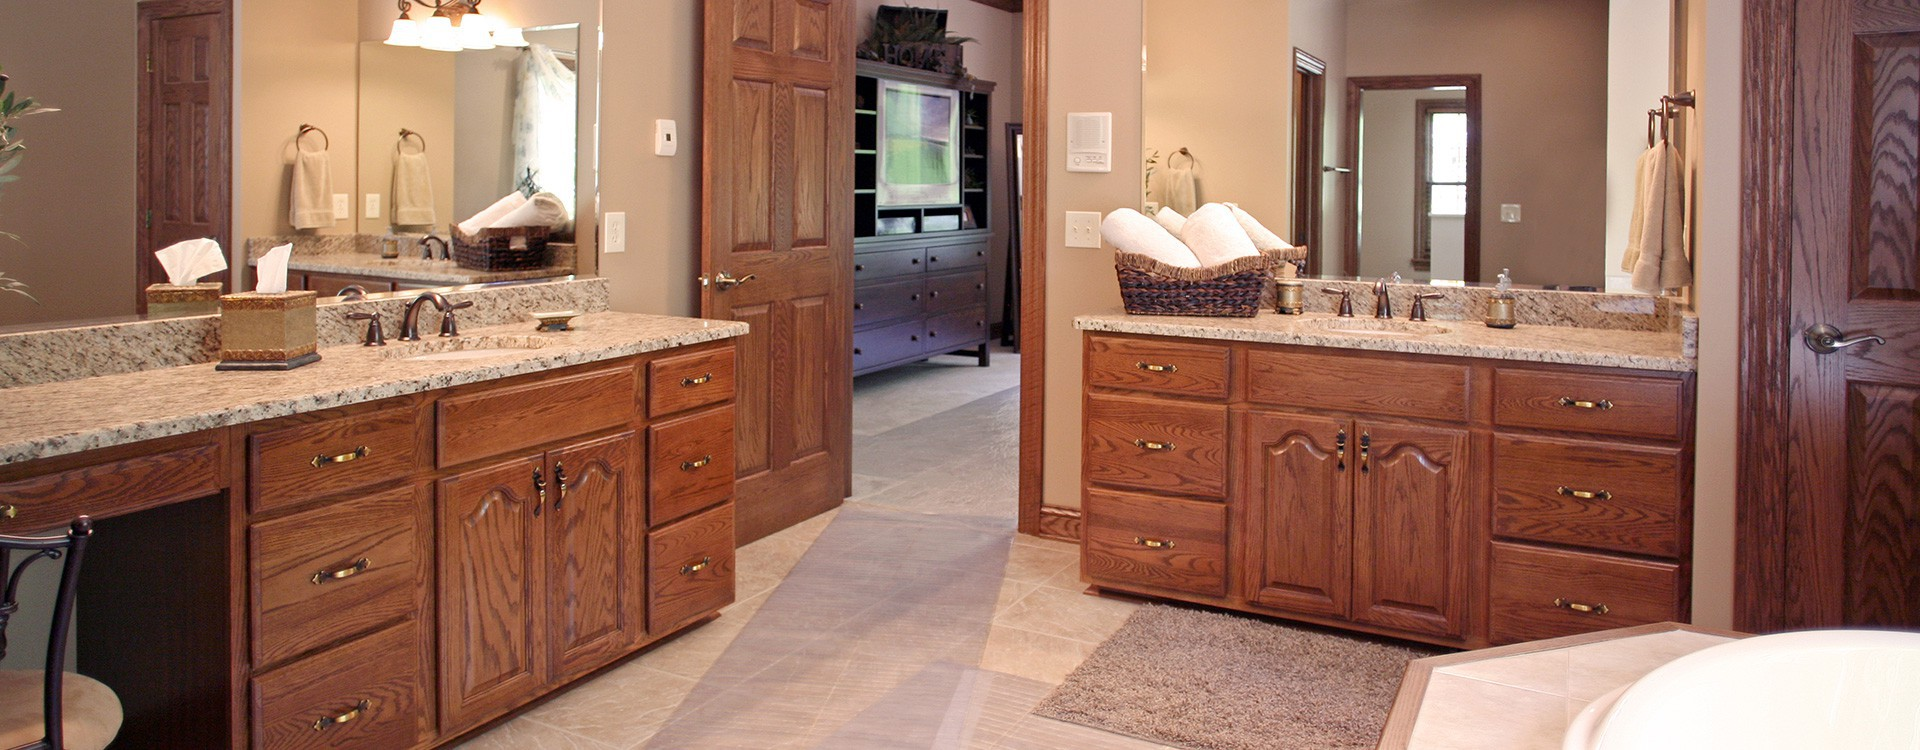 master_bath_with_multiple_vanities